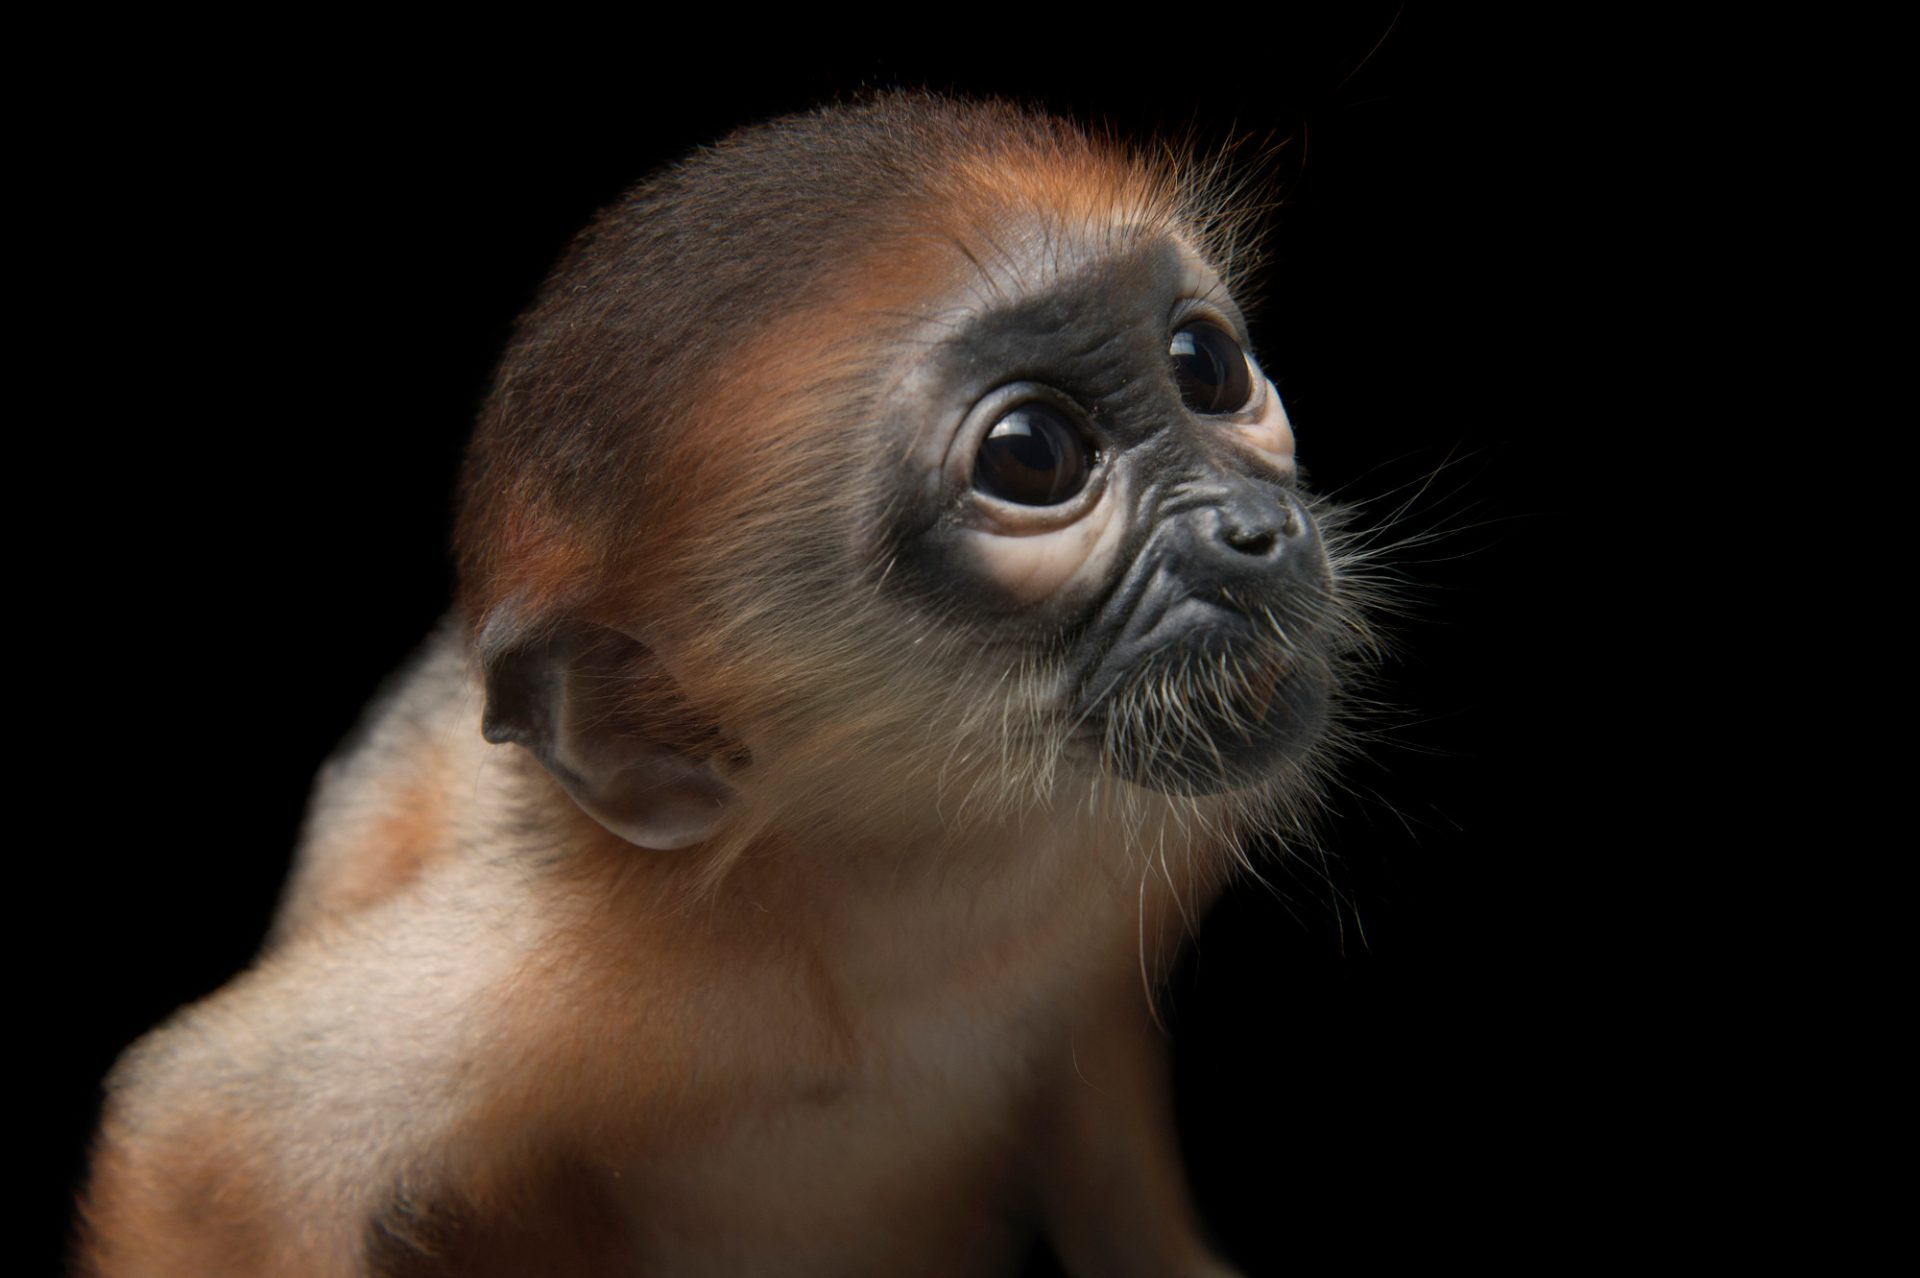 """Luna"", a hand-raised, 56-day-old red-shanked douc langur (Pygathrix Pygathrix) at the Endangered Primate Rescue Center in Cuc Phuong National Park, Vietnam. Endangered (IUCN) and federally endangered."